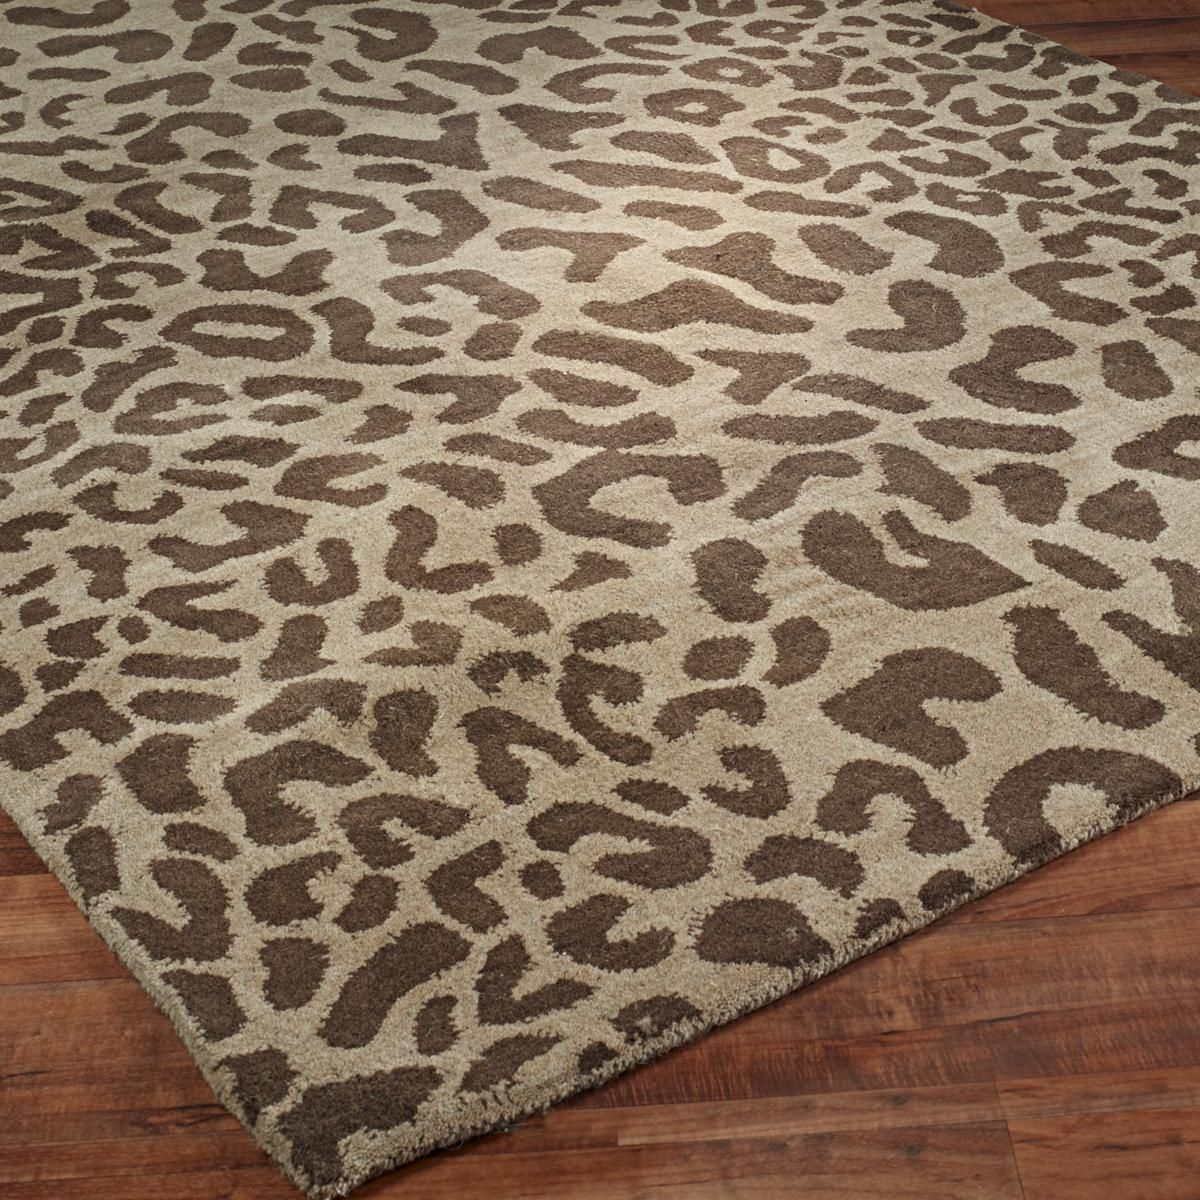 Mill Prestige Style Derning Color Blue Animal Print Stair Runner Area Rugs Carpet Stairs